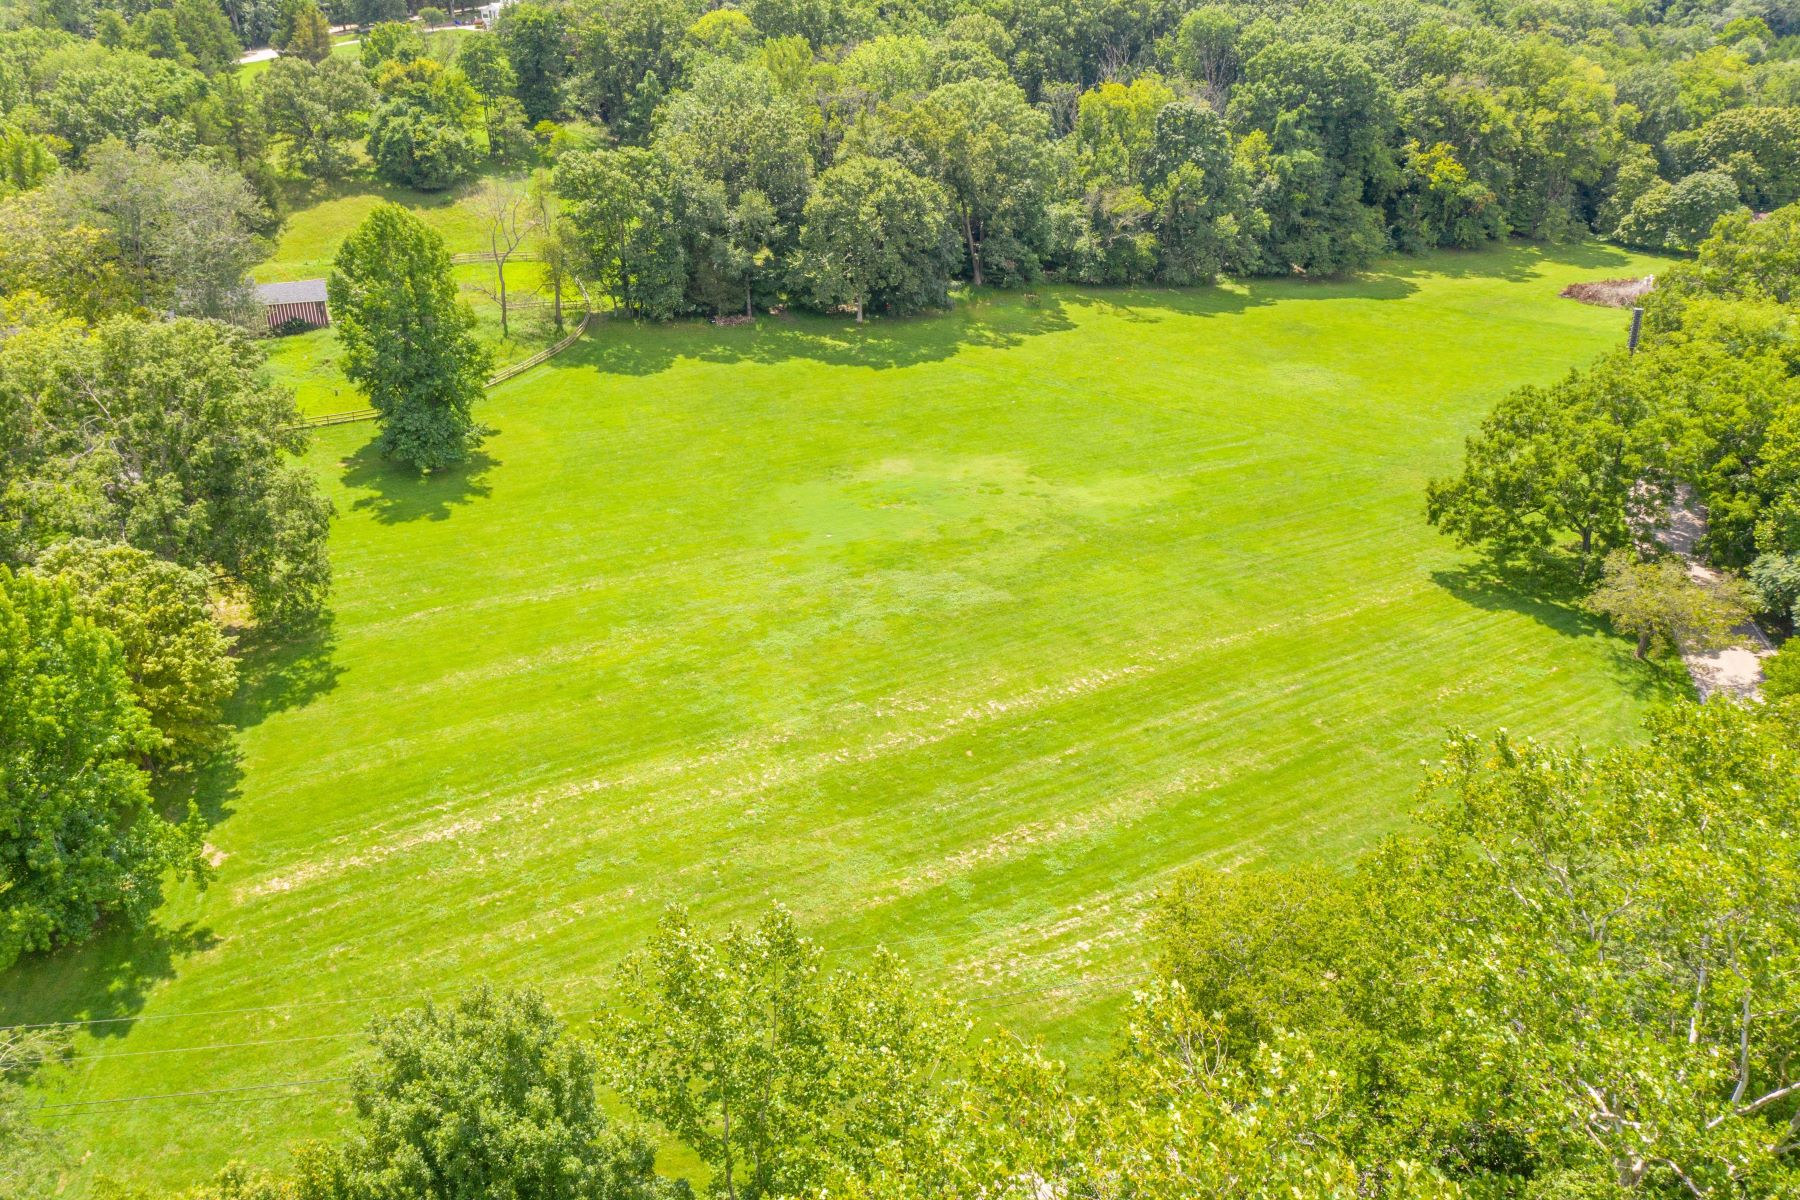 Property for Sale at Picturesque 3-acre lot in Wildwood 816 Forby Road Eureka, Missouri 63025 United States